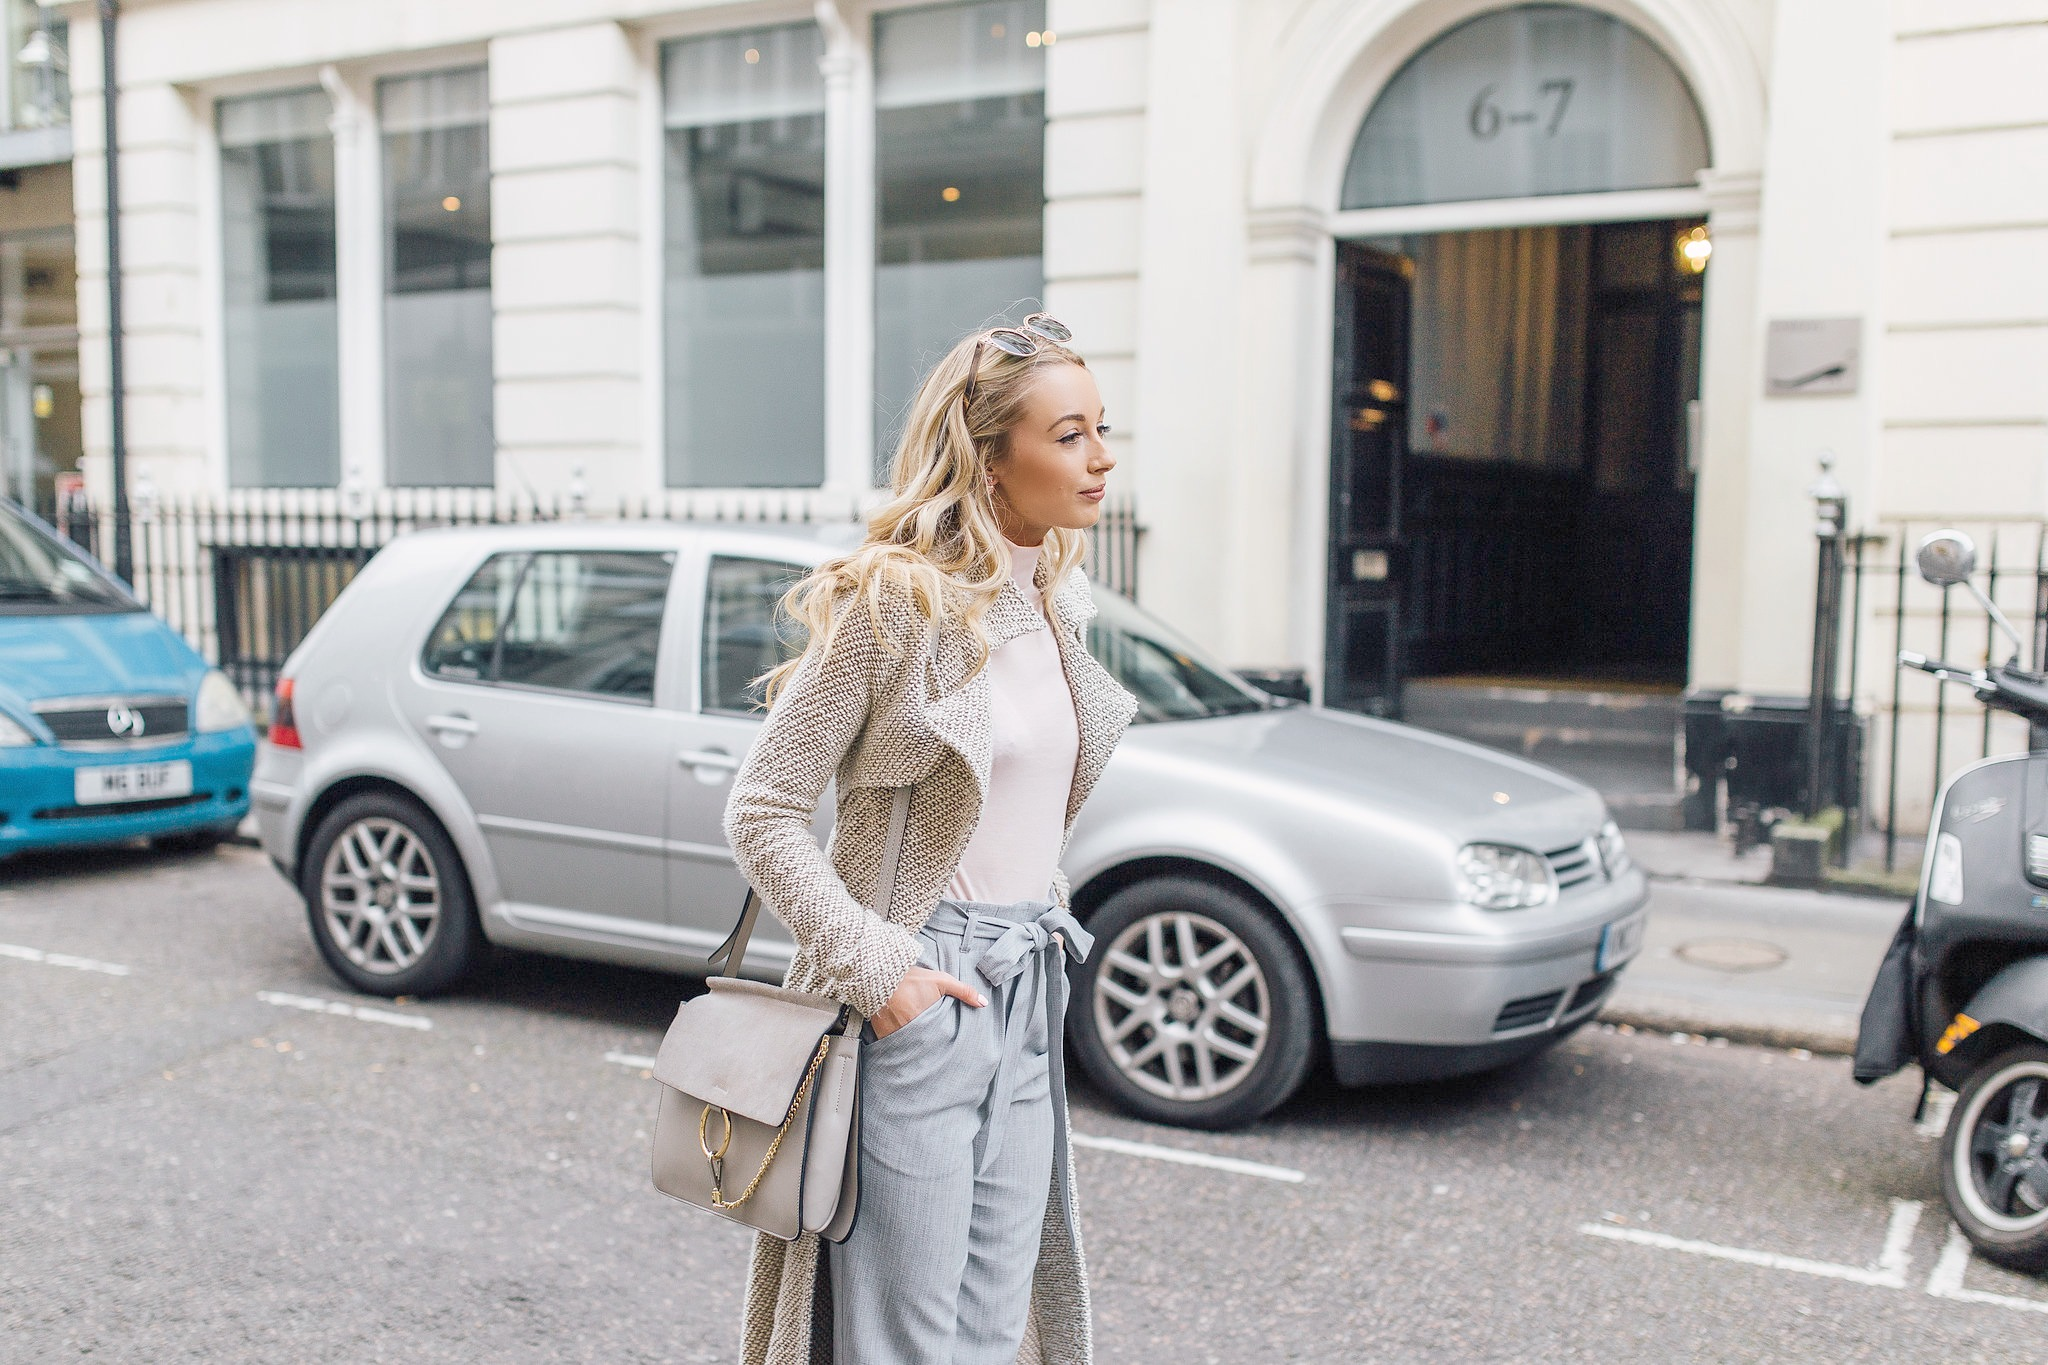 London Fashion Week Day One #ootd fashion mumblr 8